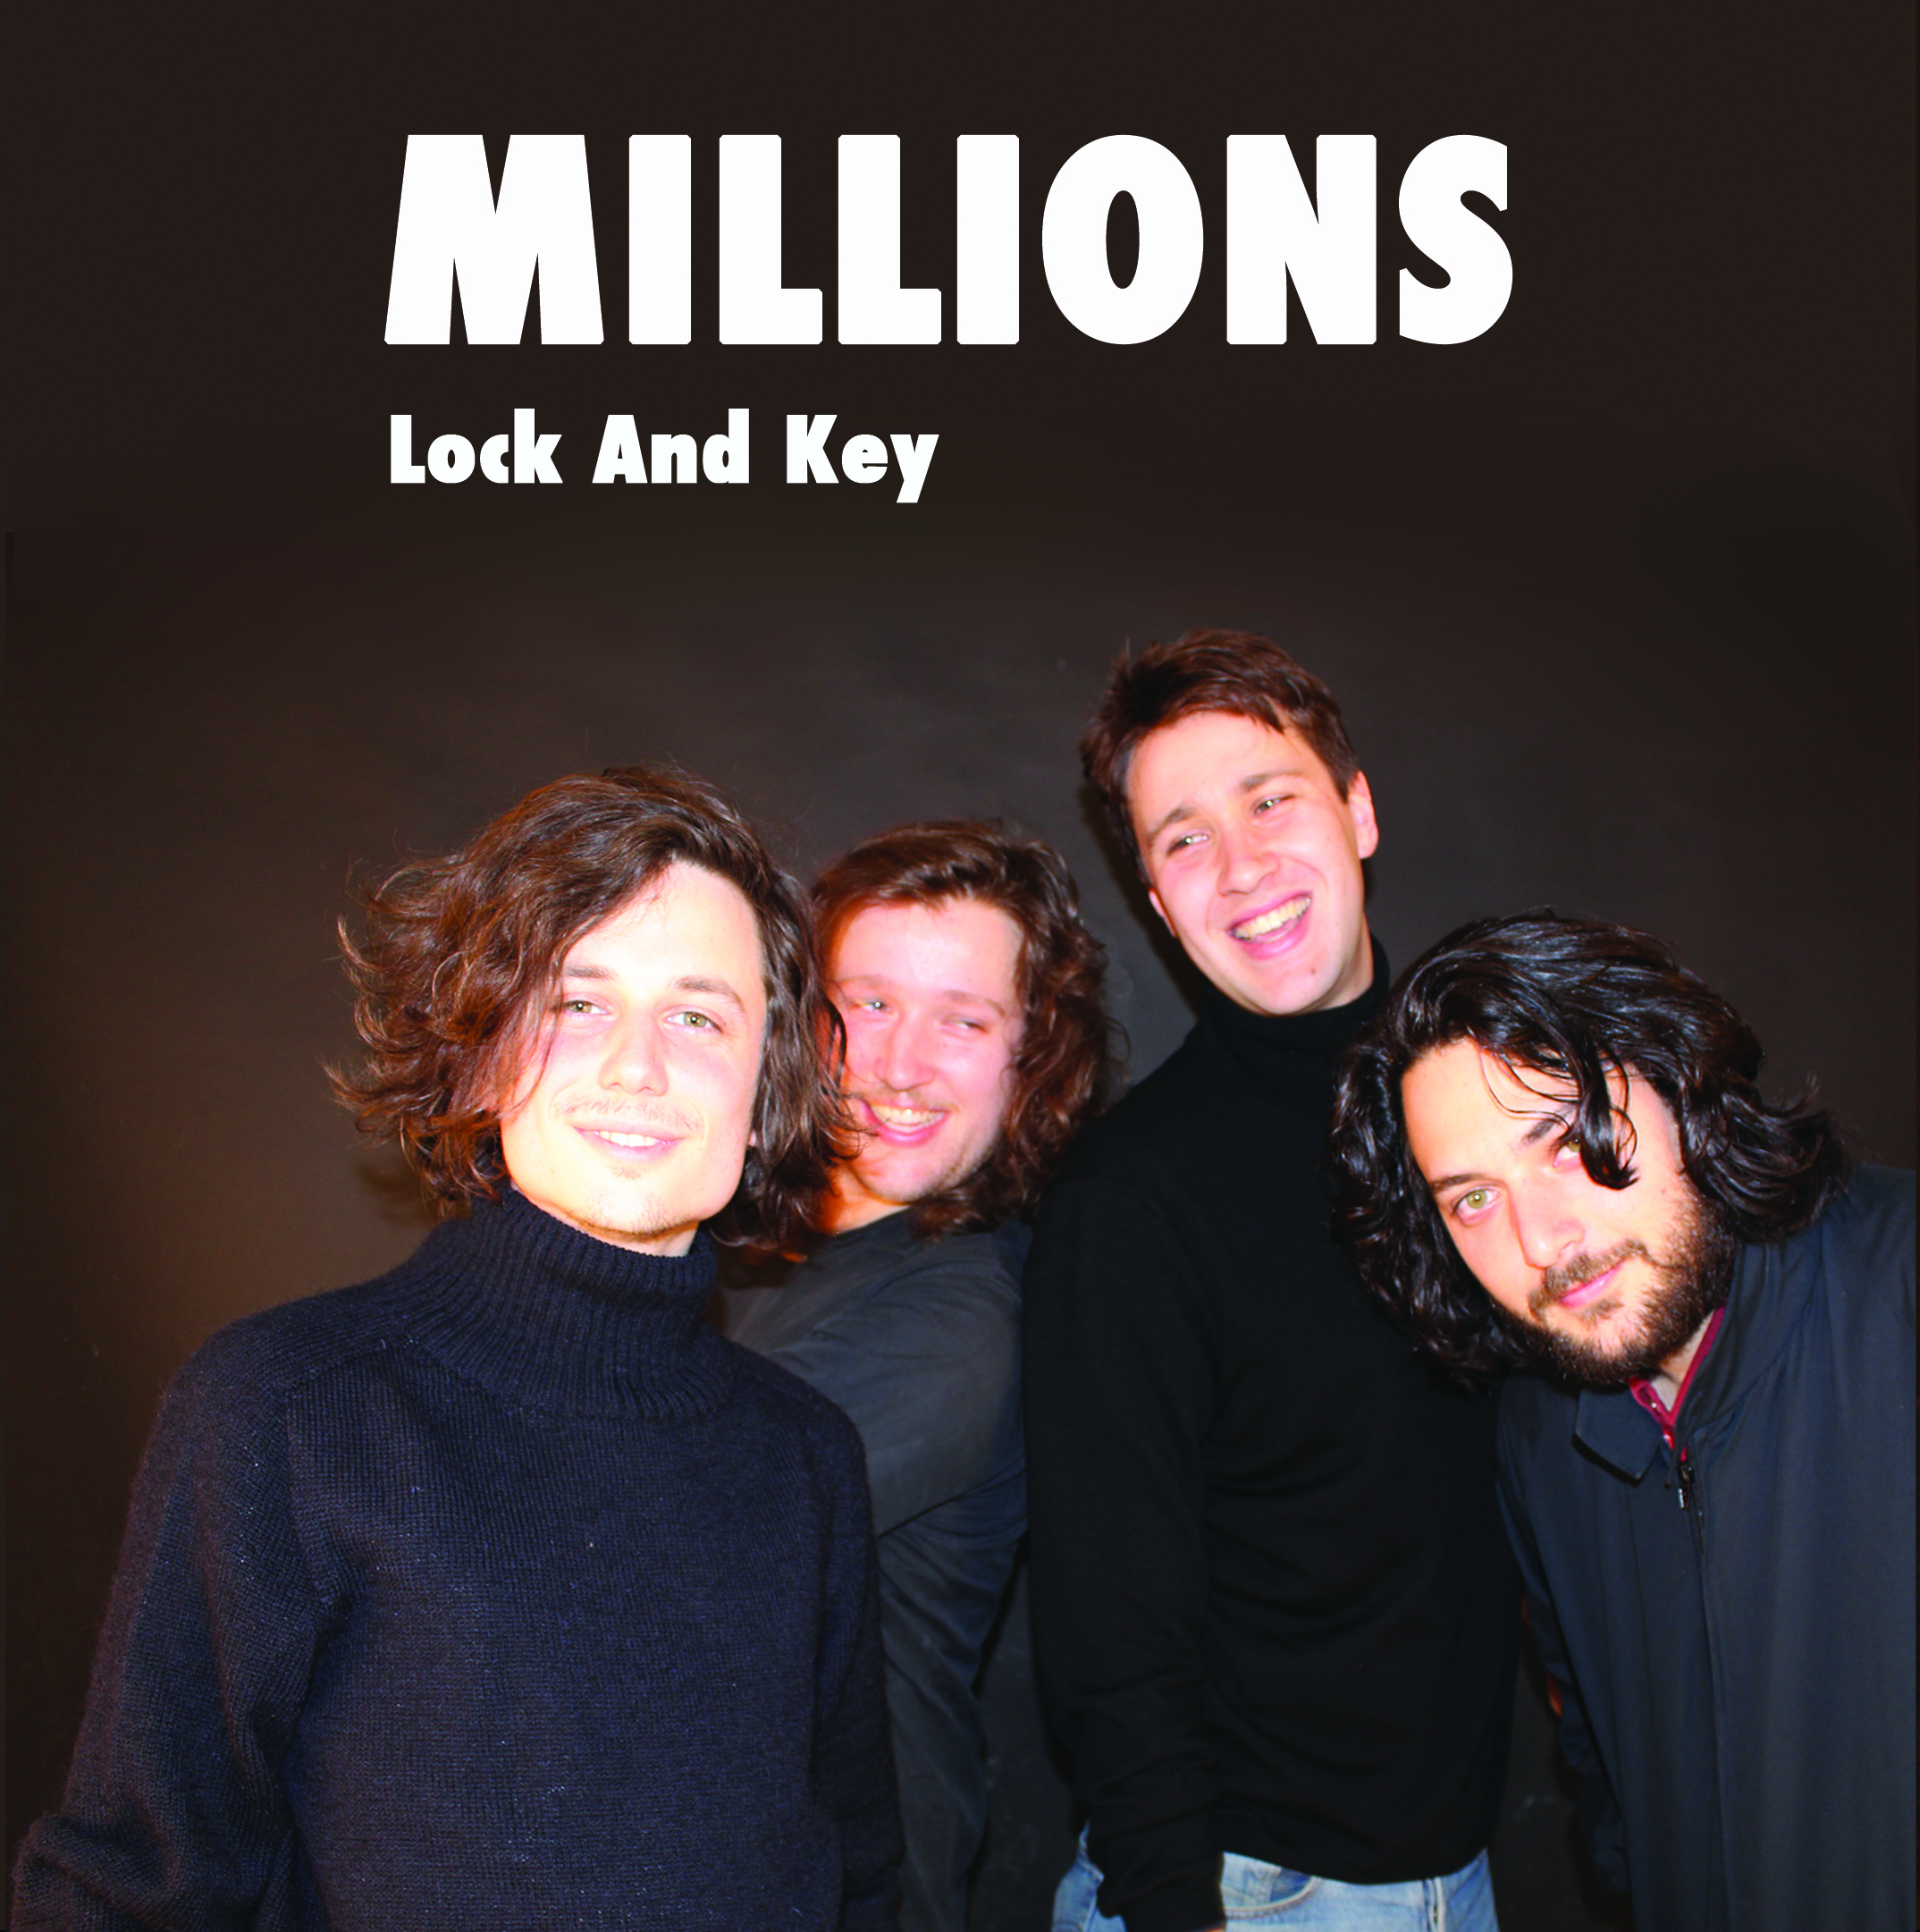 Millions - Lock & Key pack.jpg